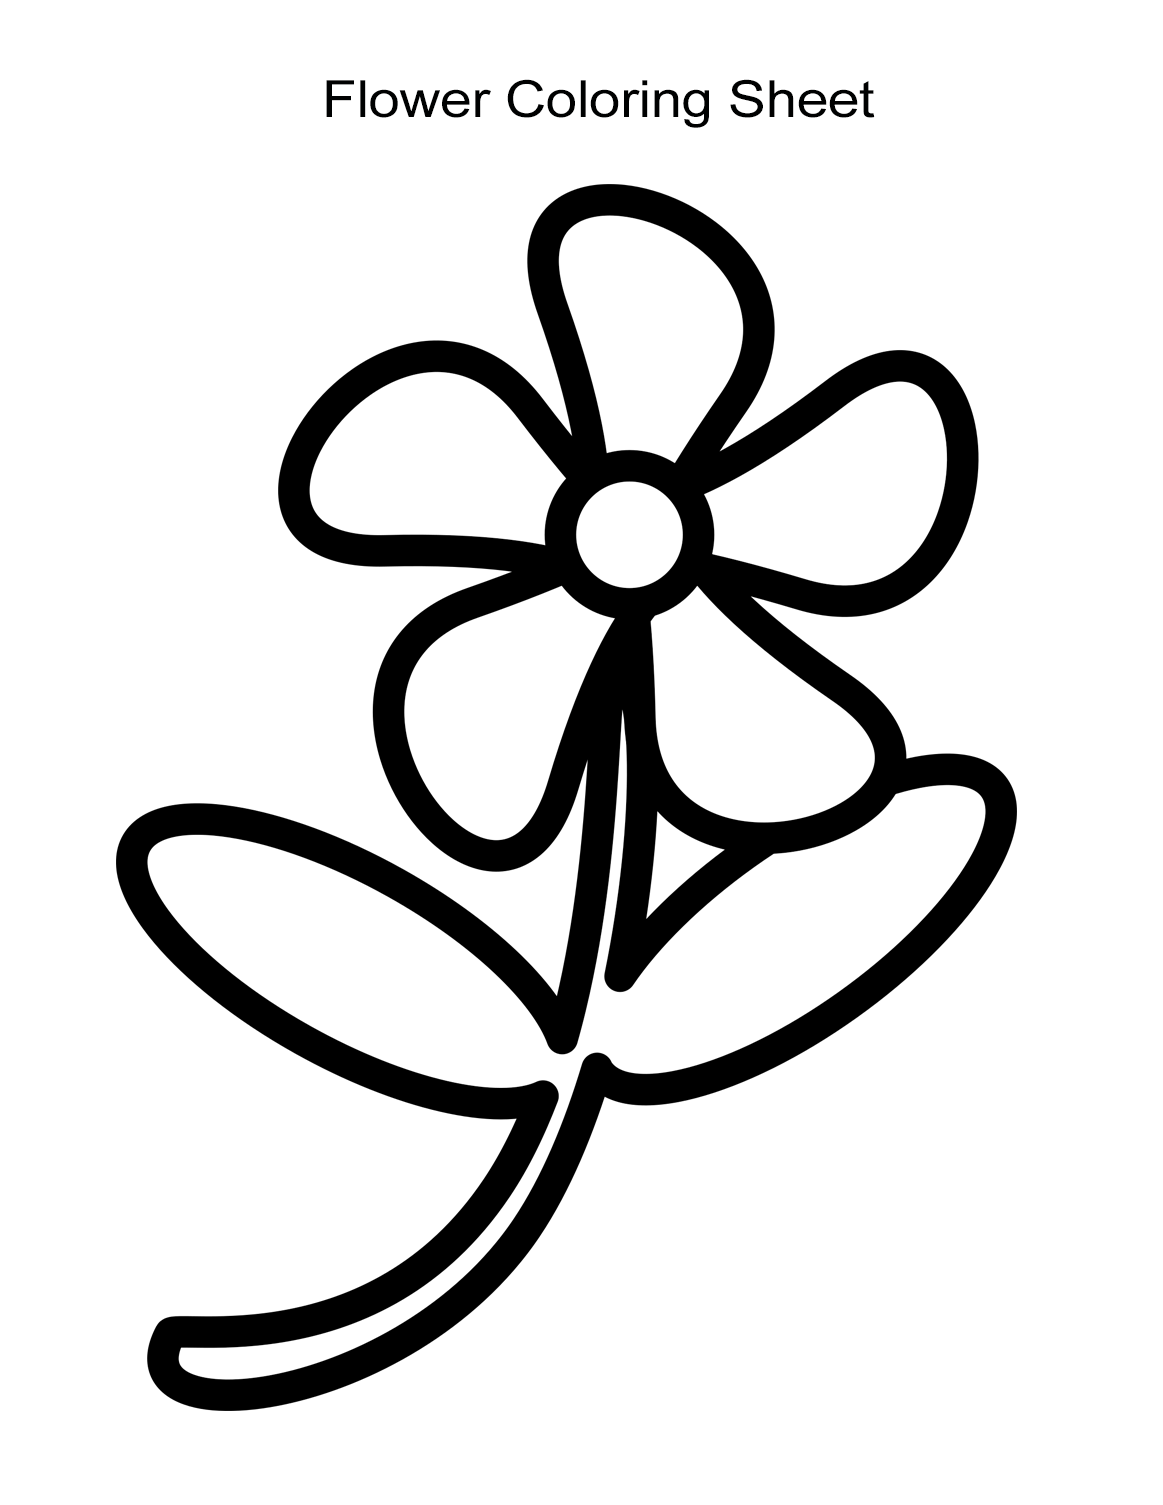 pictures of flowers to color 10 flower coloring sheets for girls and boys all esl color of flowers pictures to